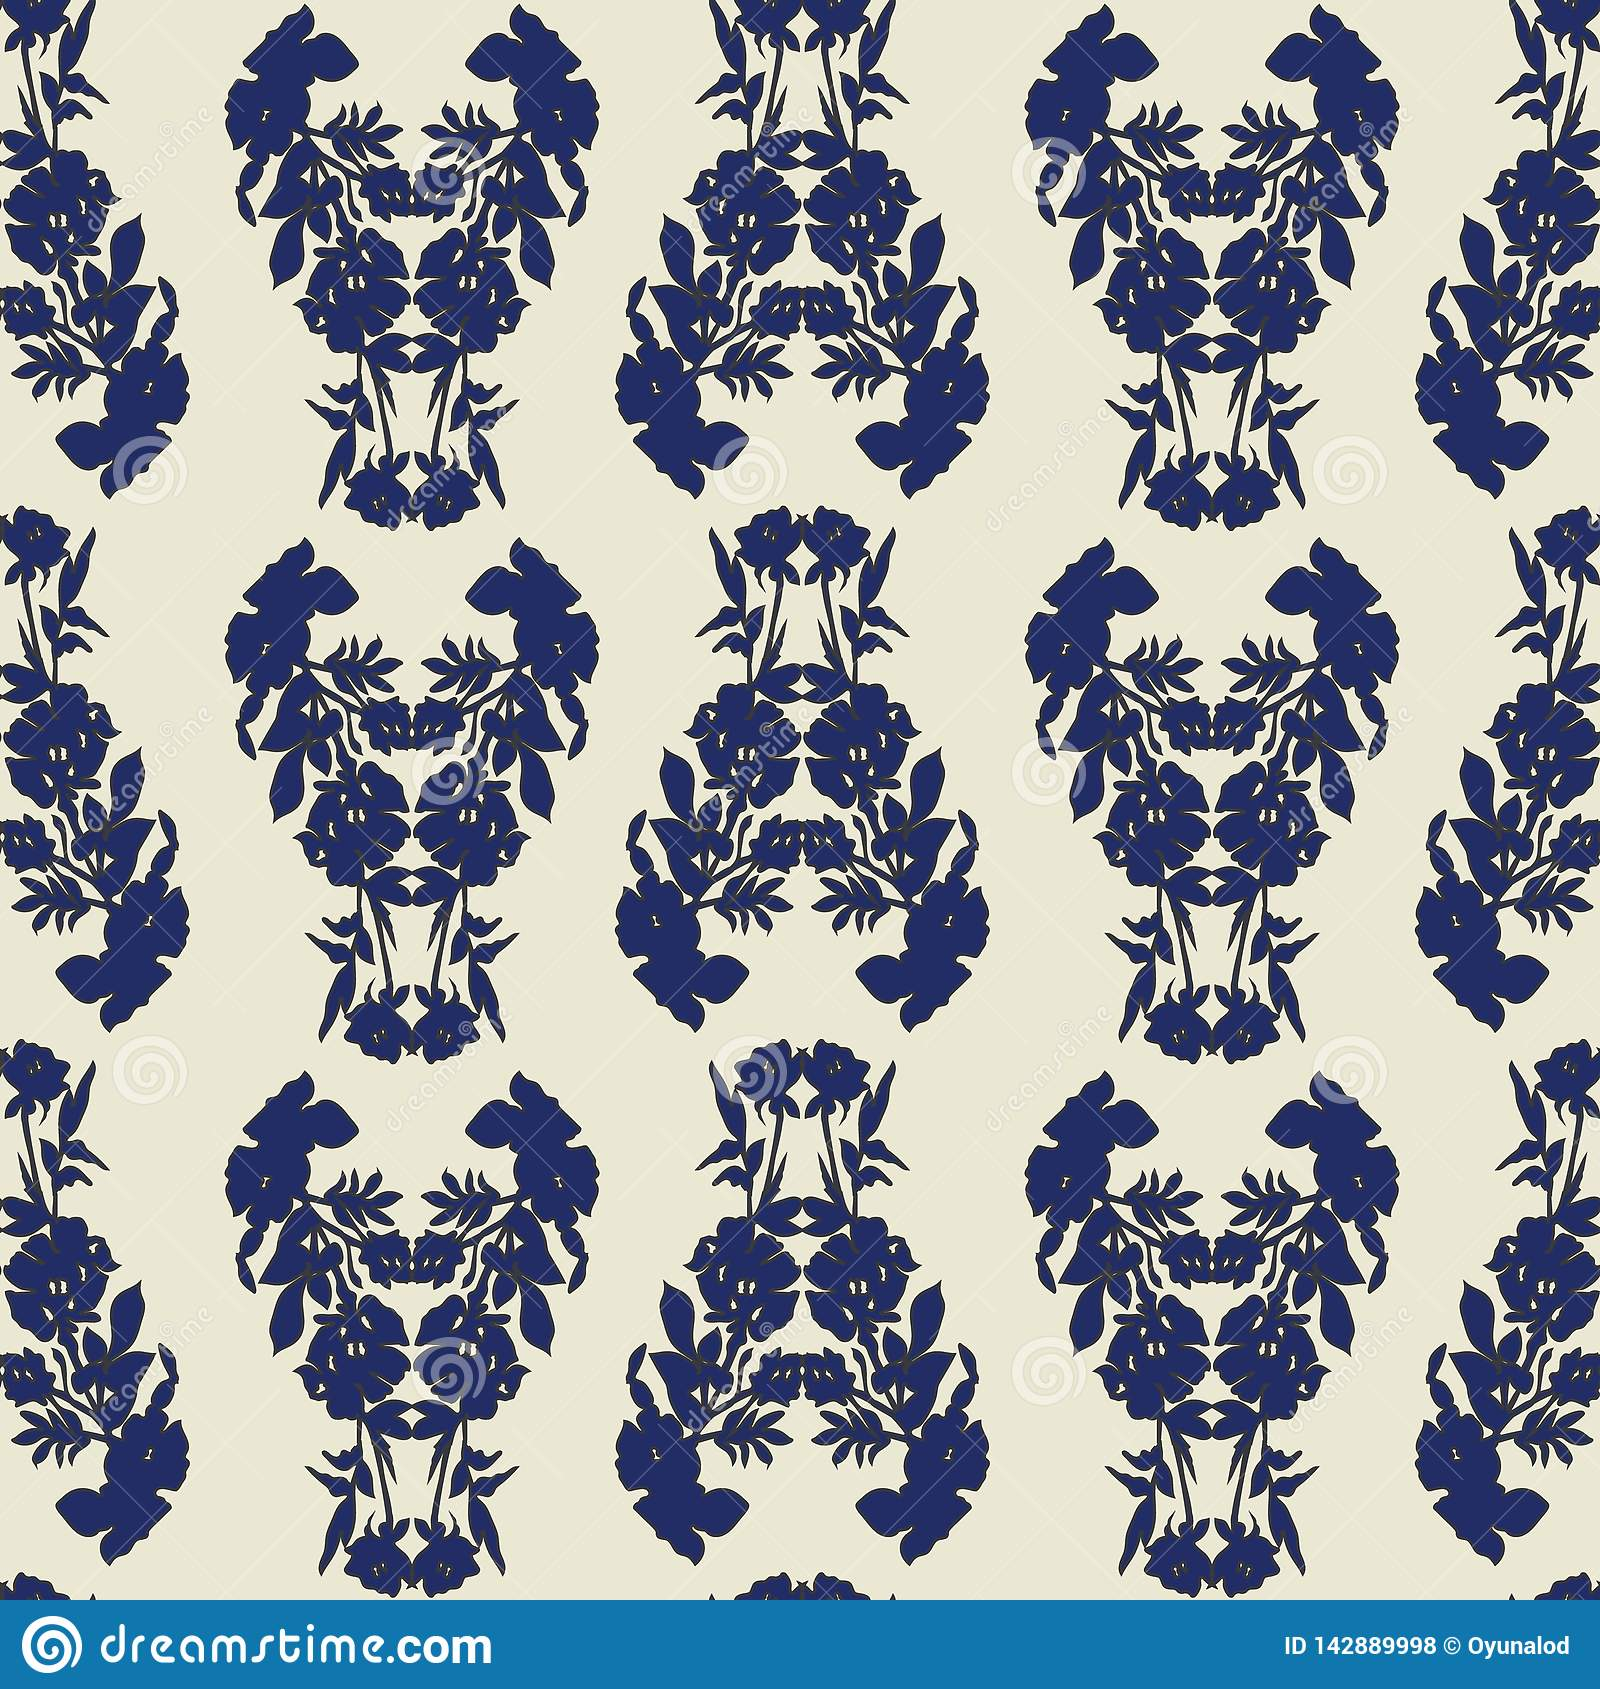 Seamless floral pattern with tulips, poppies and lilies. Complex vector print in blue, black and cream.